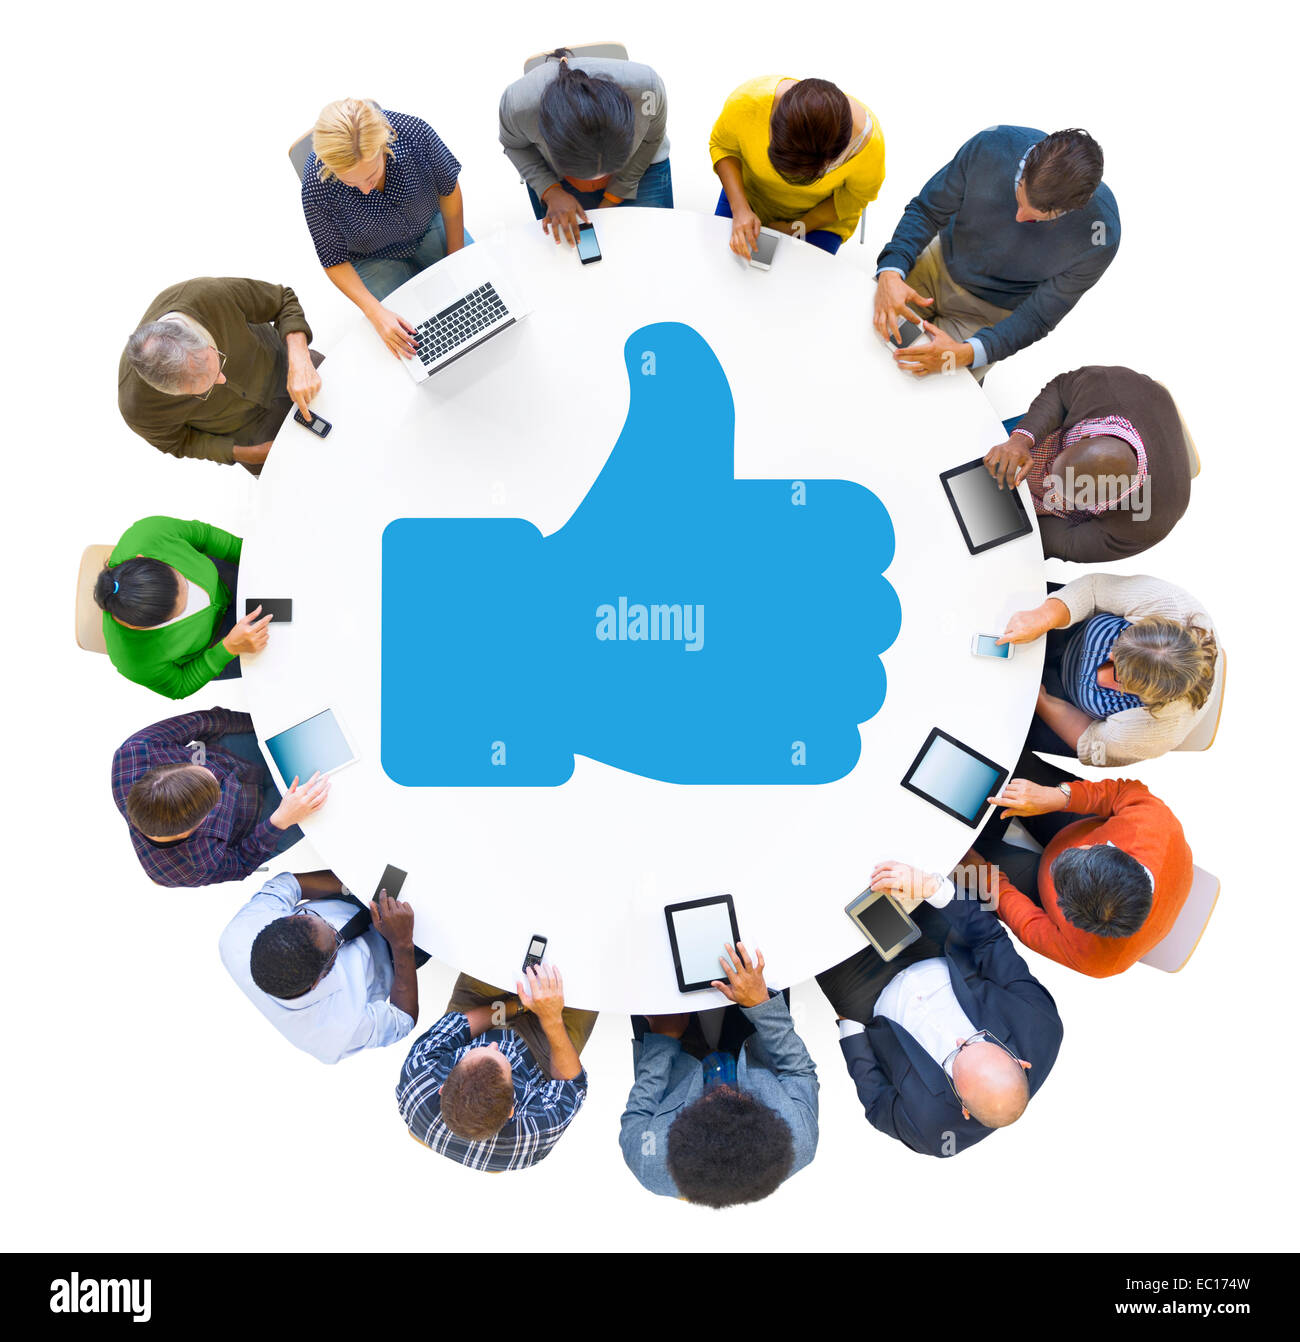 Multiethnic People Using Digital Devices with Thumbs Up Symbol - Stock Image